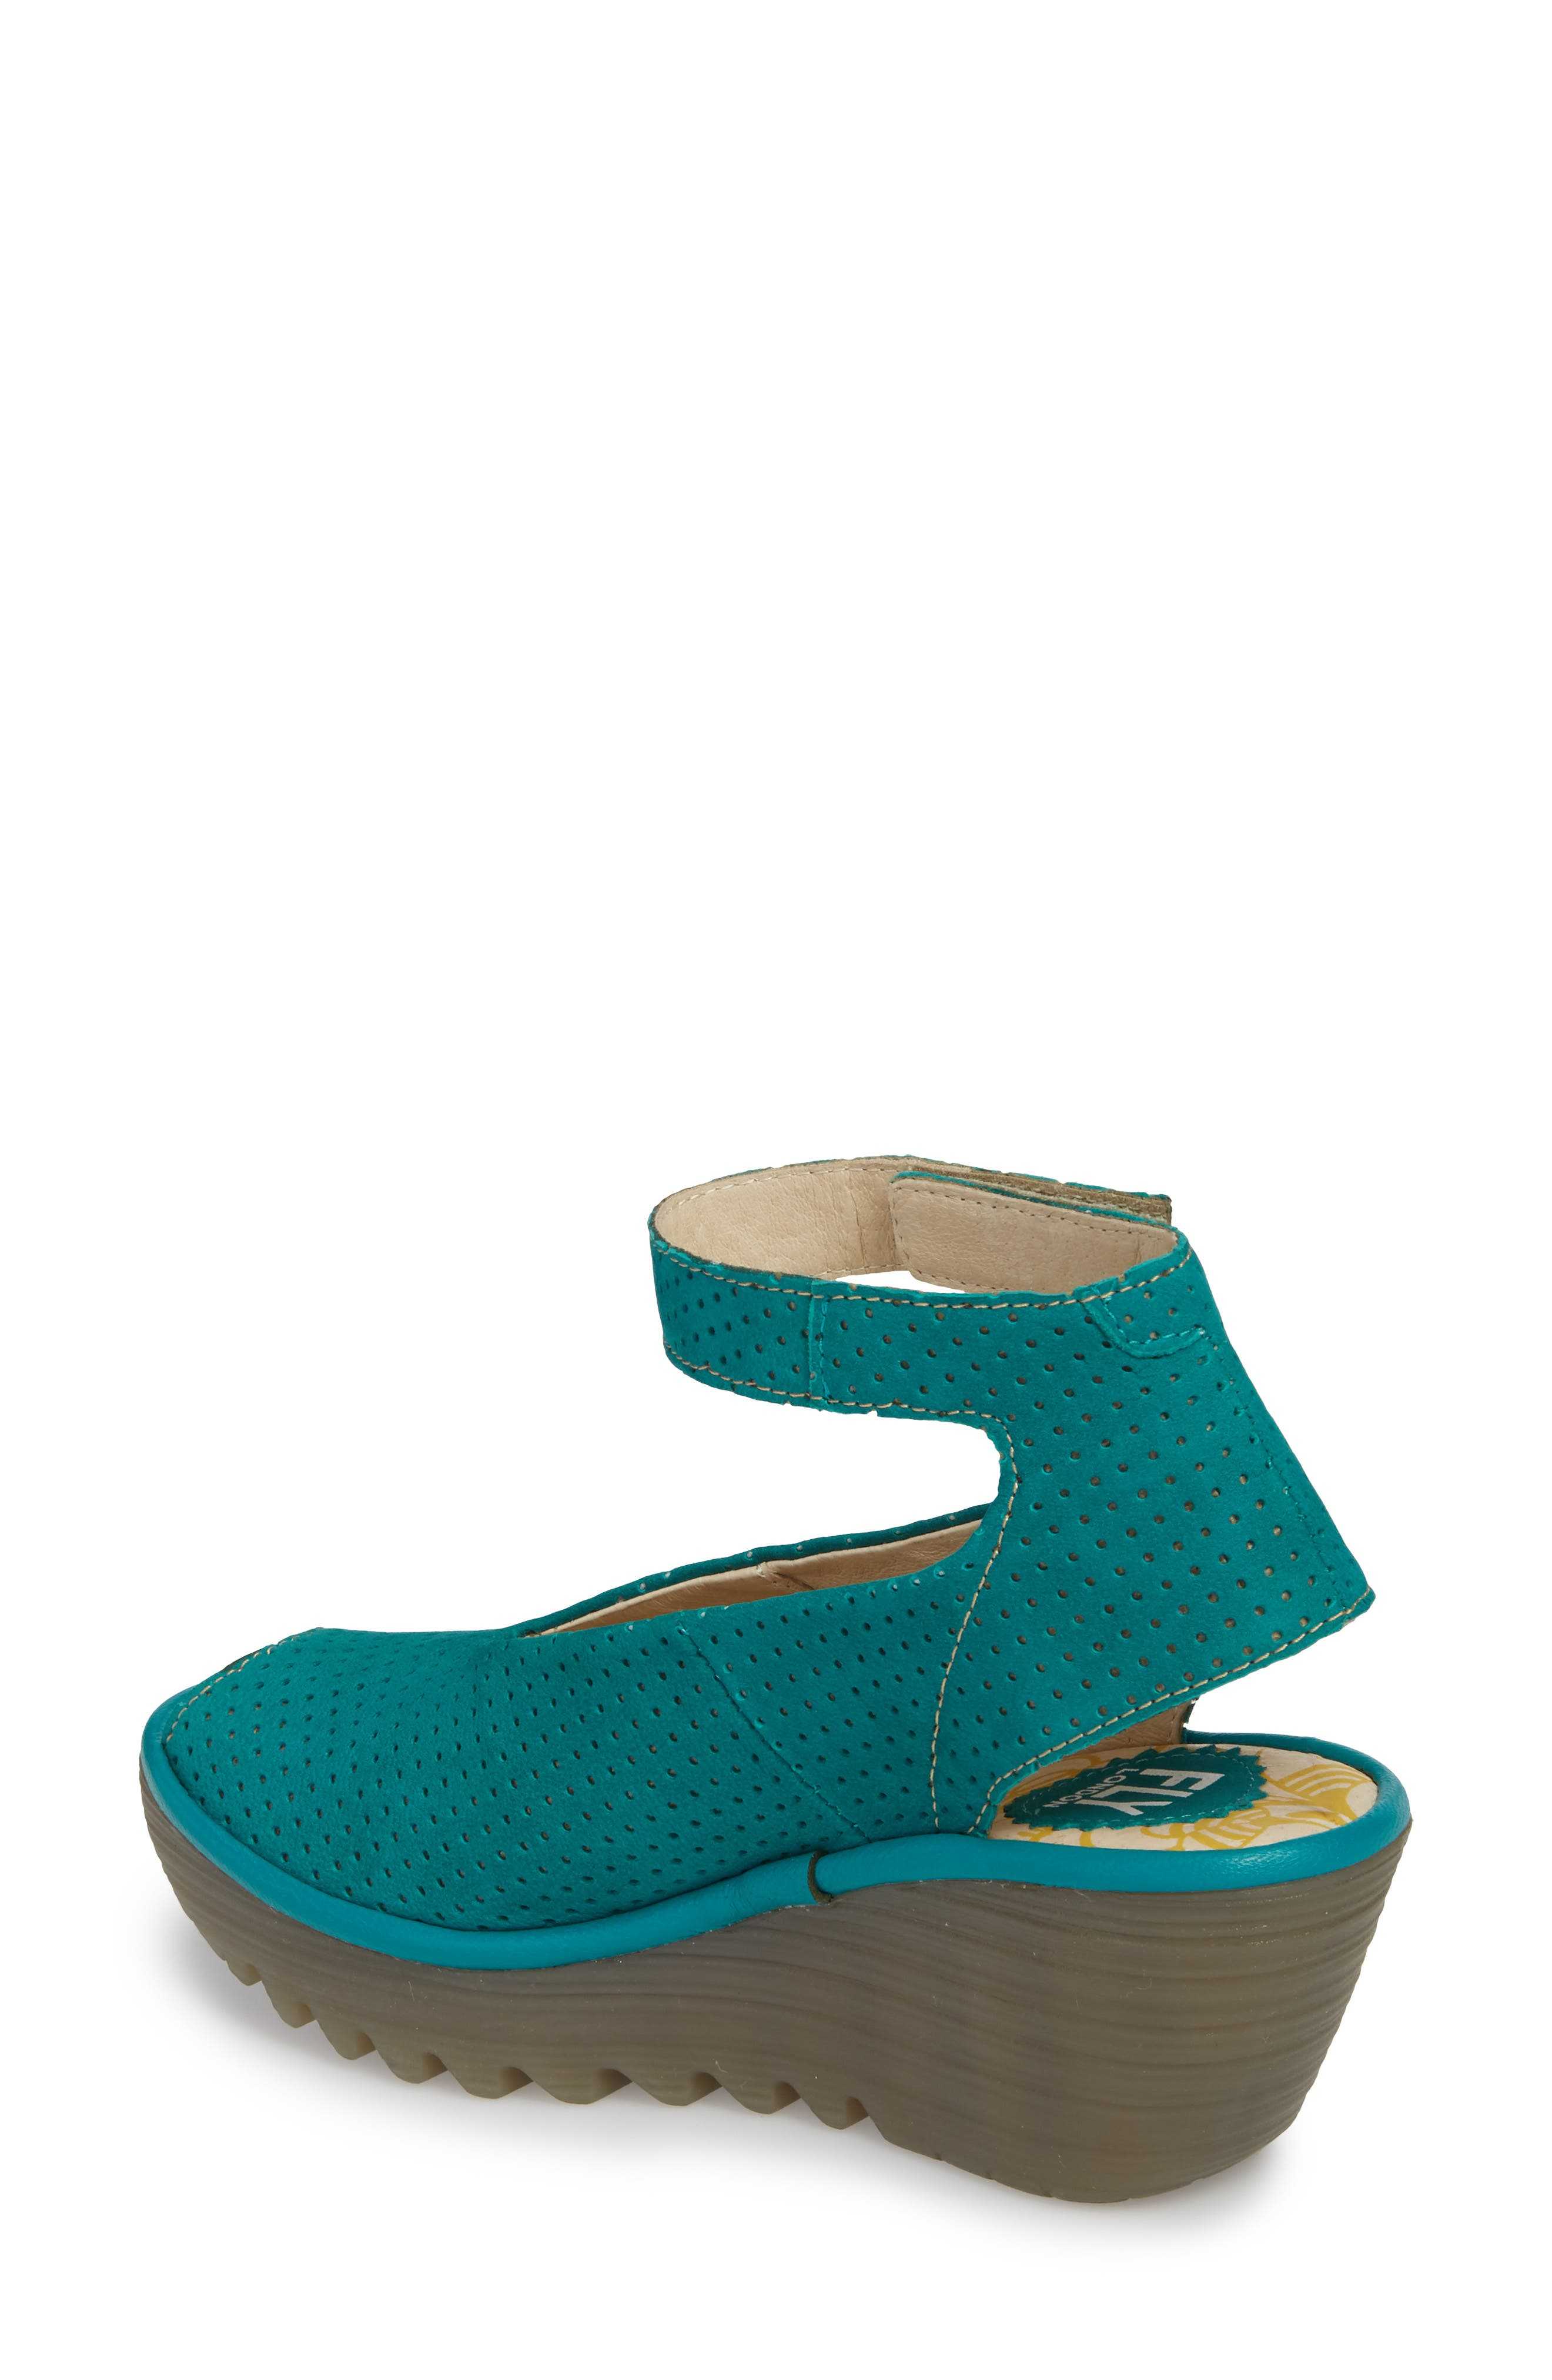 'Yala' Perforated Leather Sandal,                             Alternate thumbnail 2, color,                             Green Leather